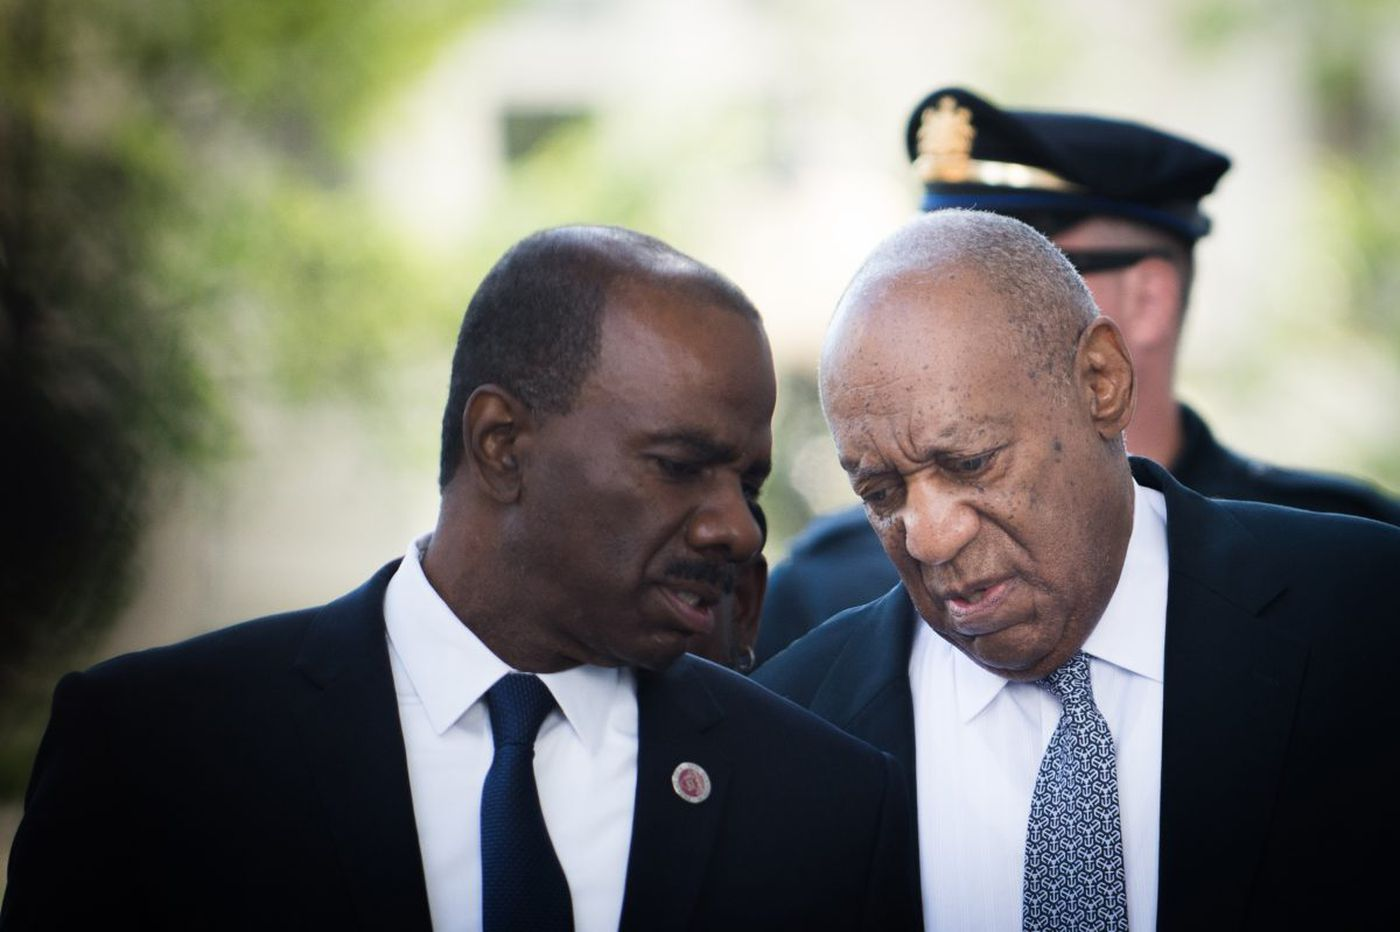 Jurors hear Cosby's description of liaison with Constand: 'I am not stopped'